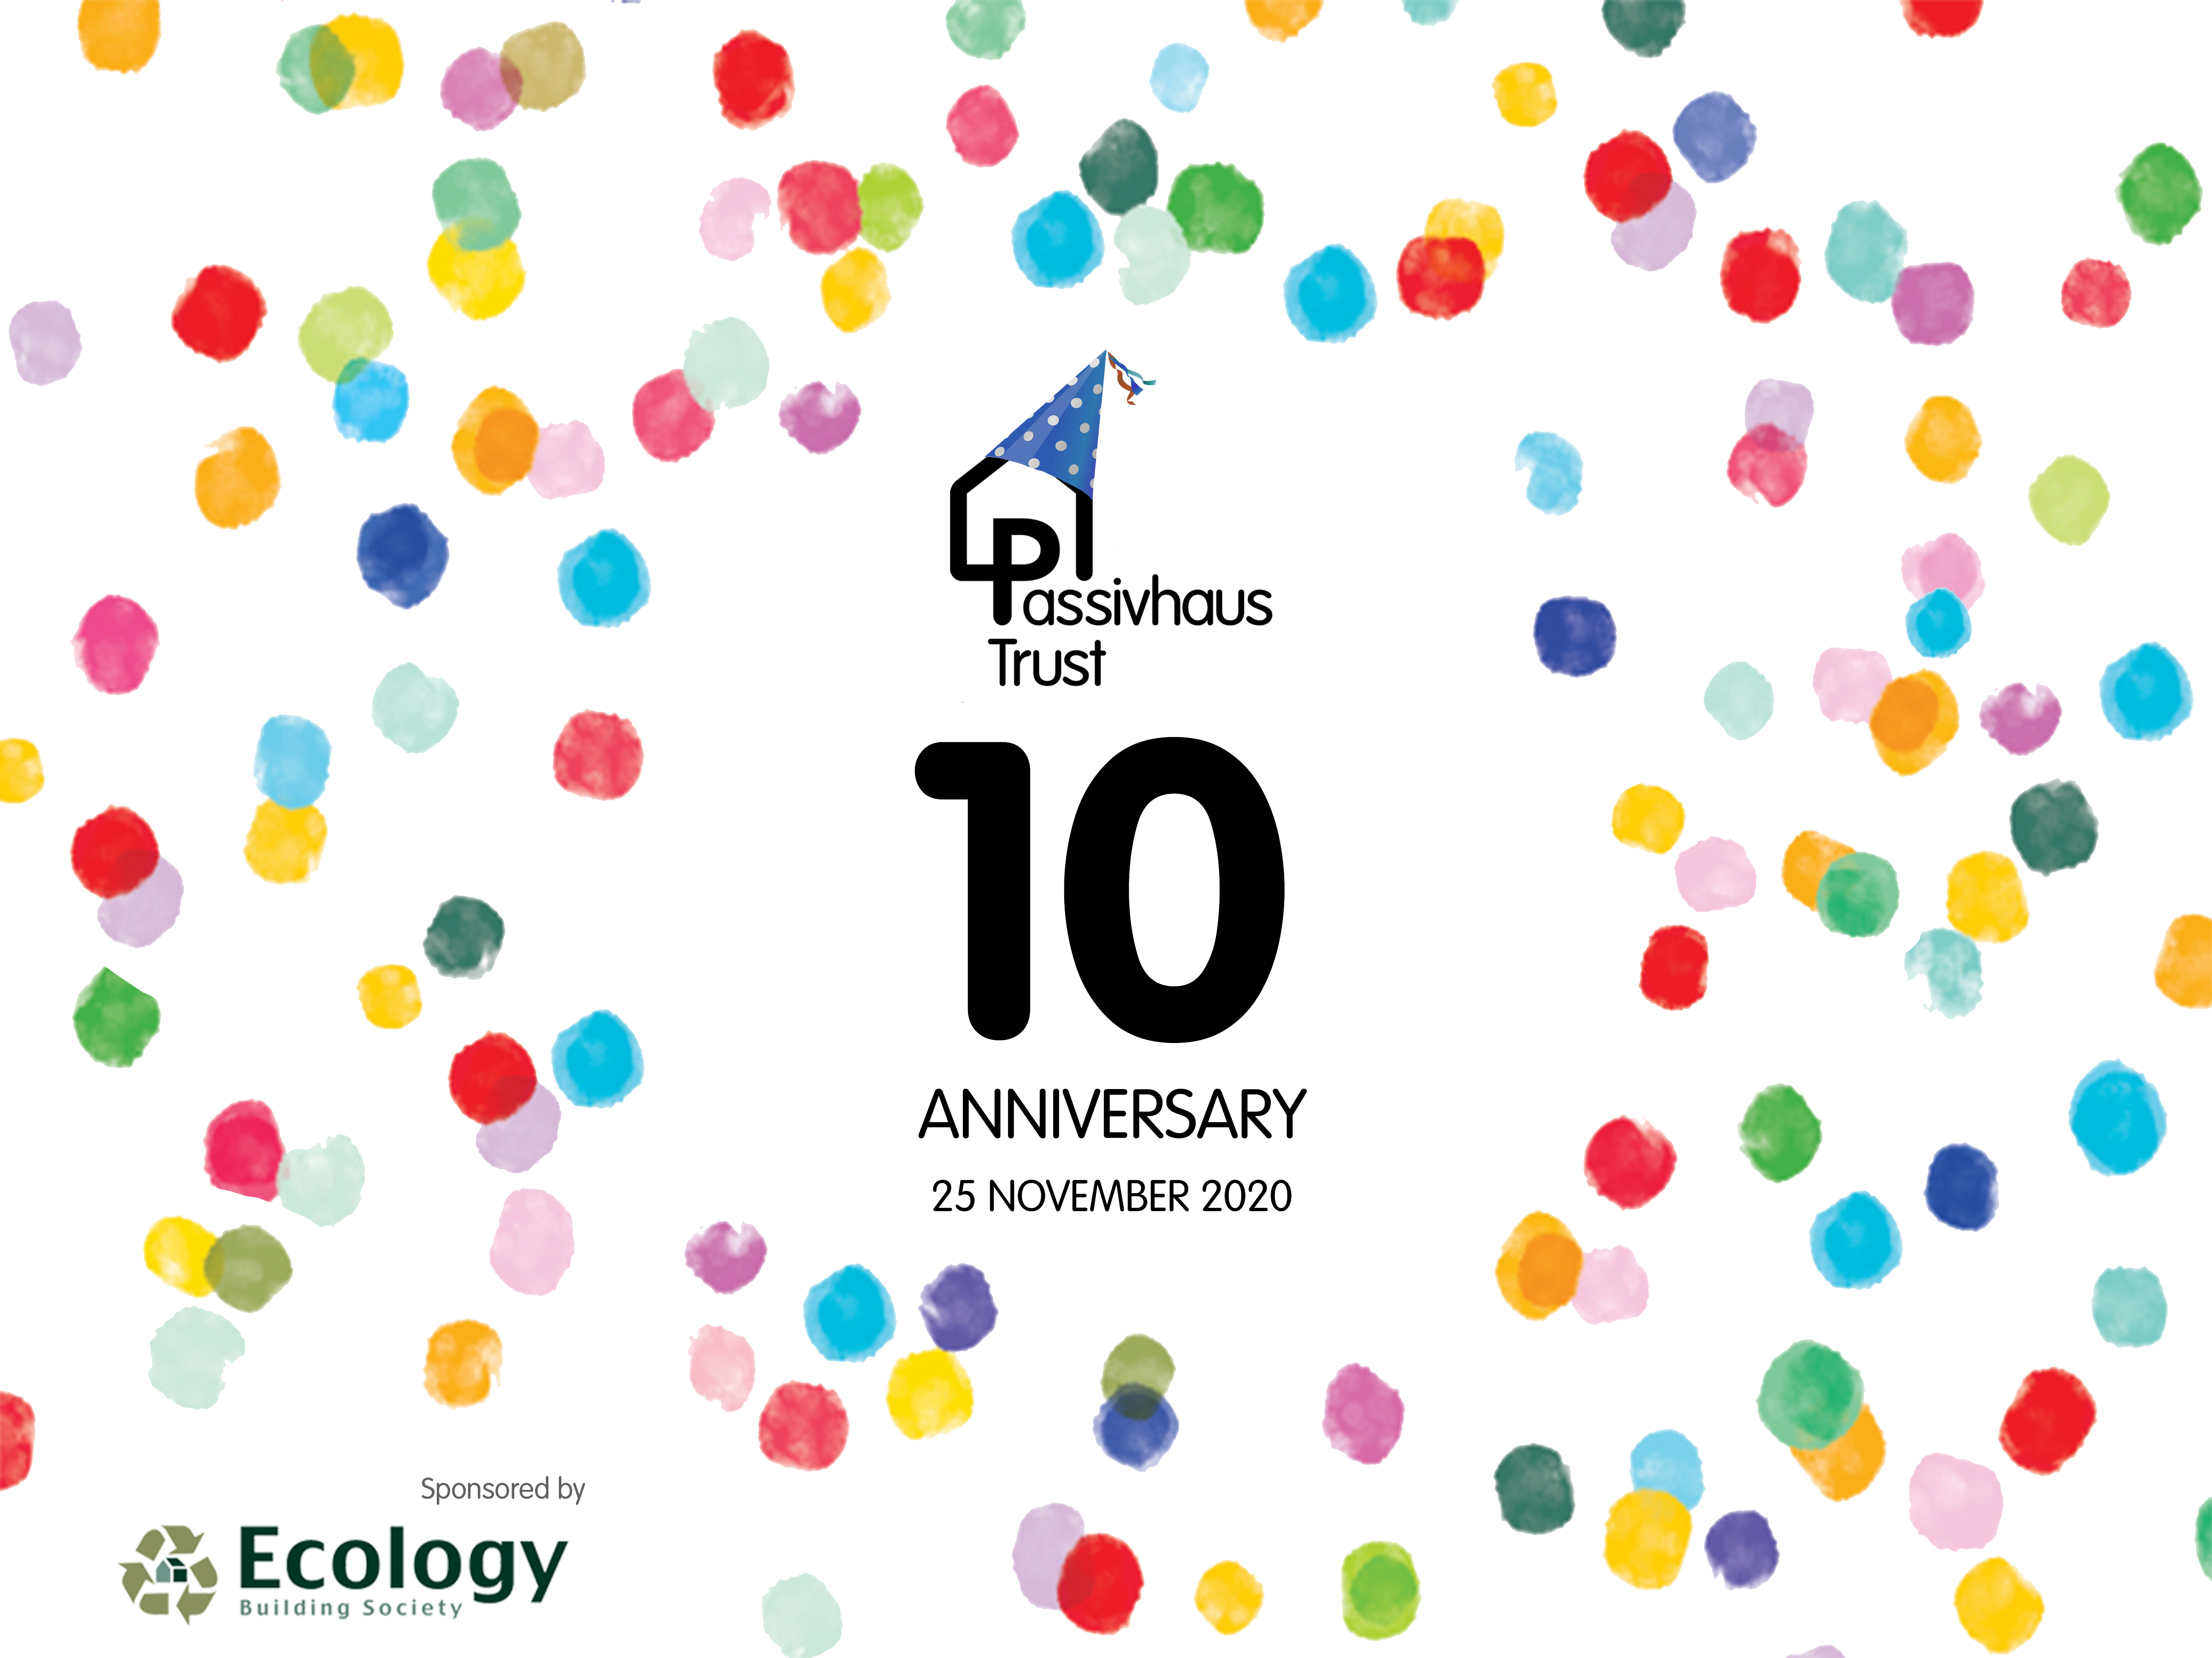 Passivhaus Trust's 10th Anniversary sponsored by Ecological Building Society